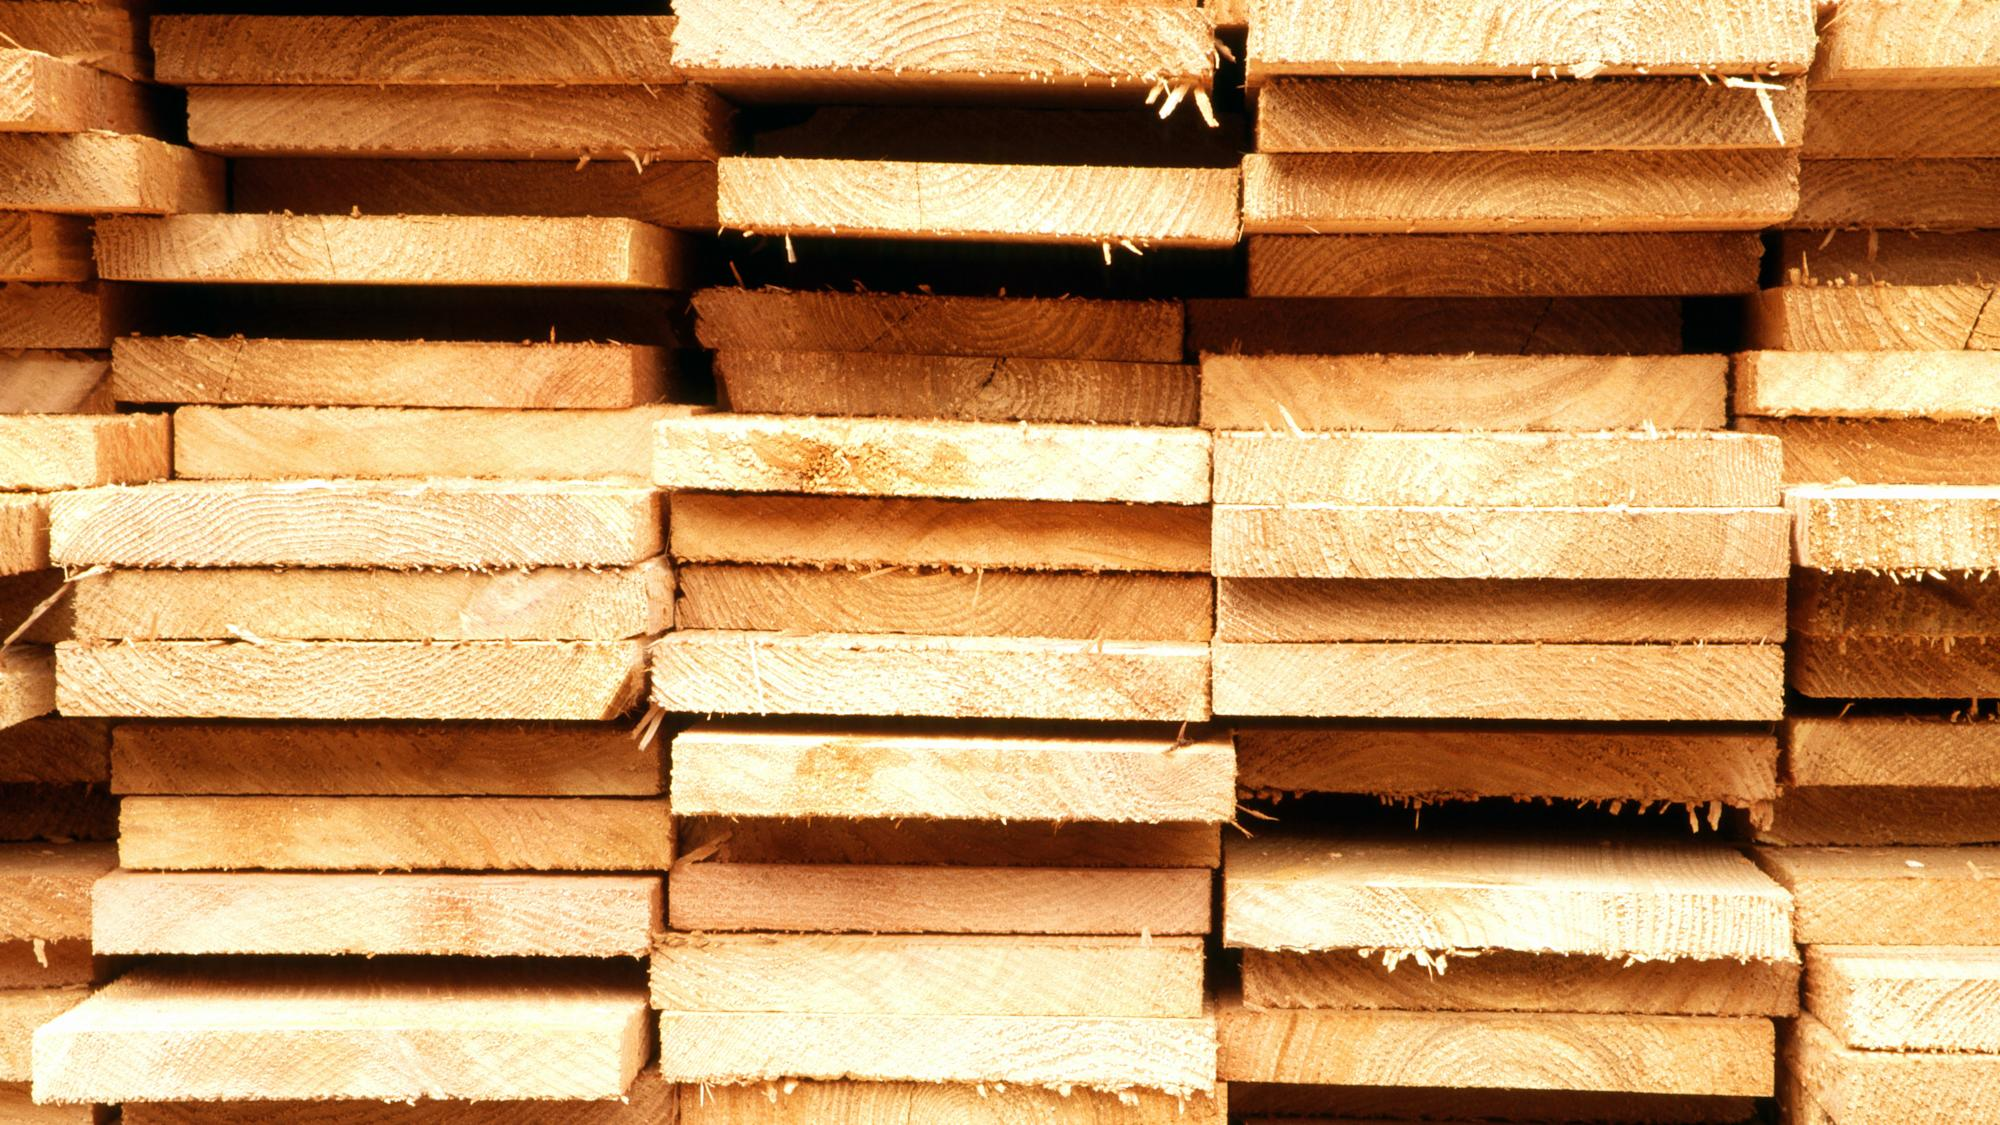 Soaring lumber prices creates a boom in the U.S. housing market